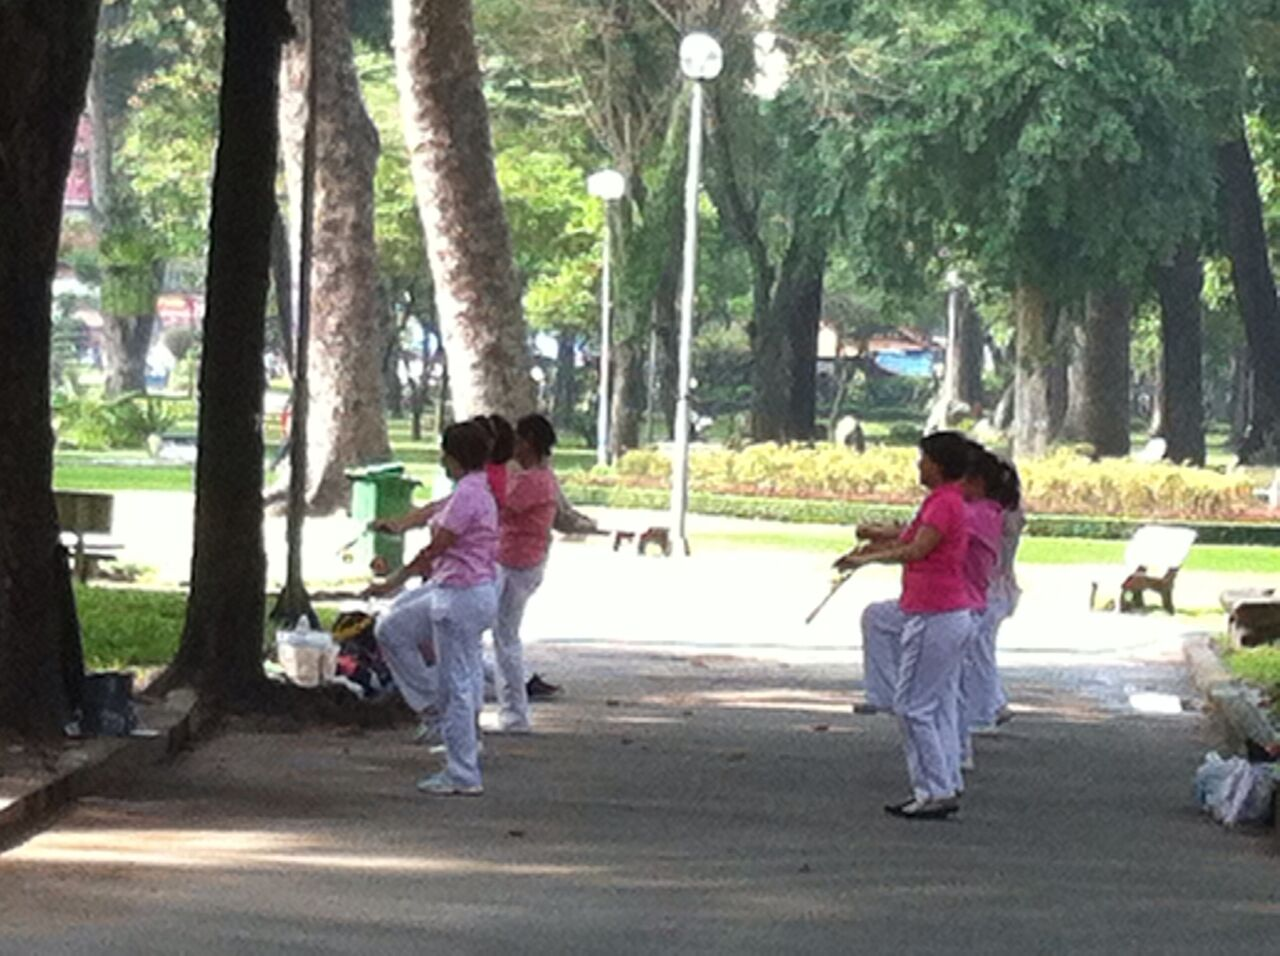 Morning exercise in the park